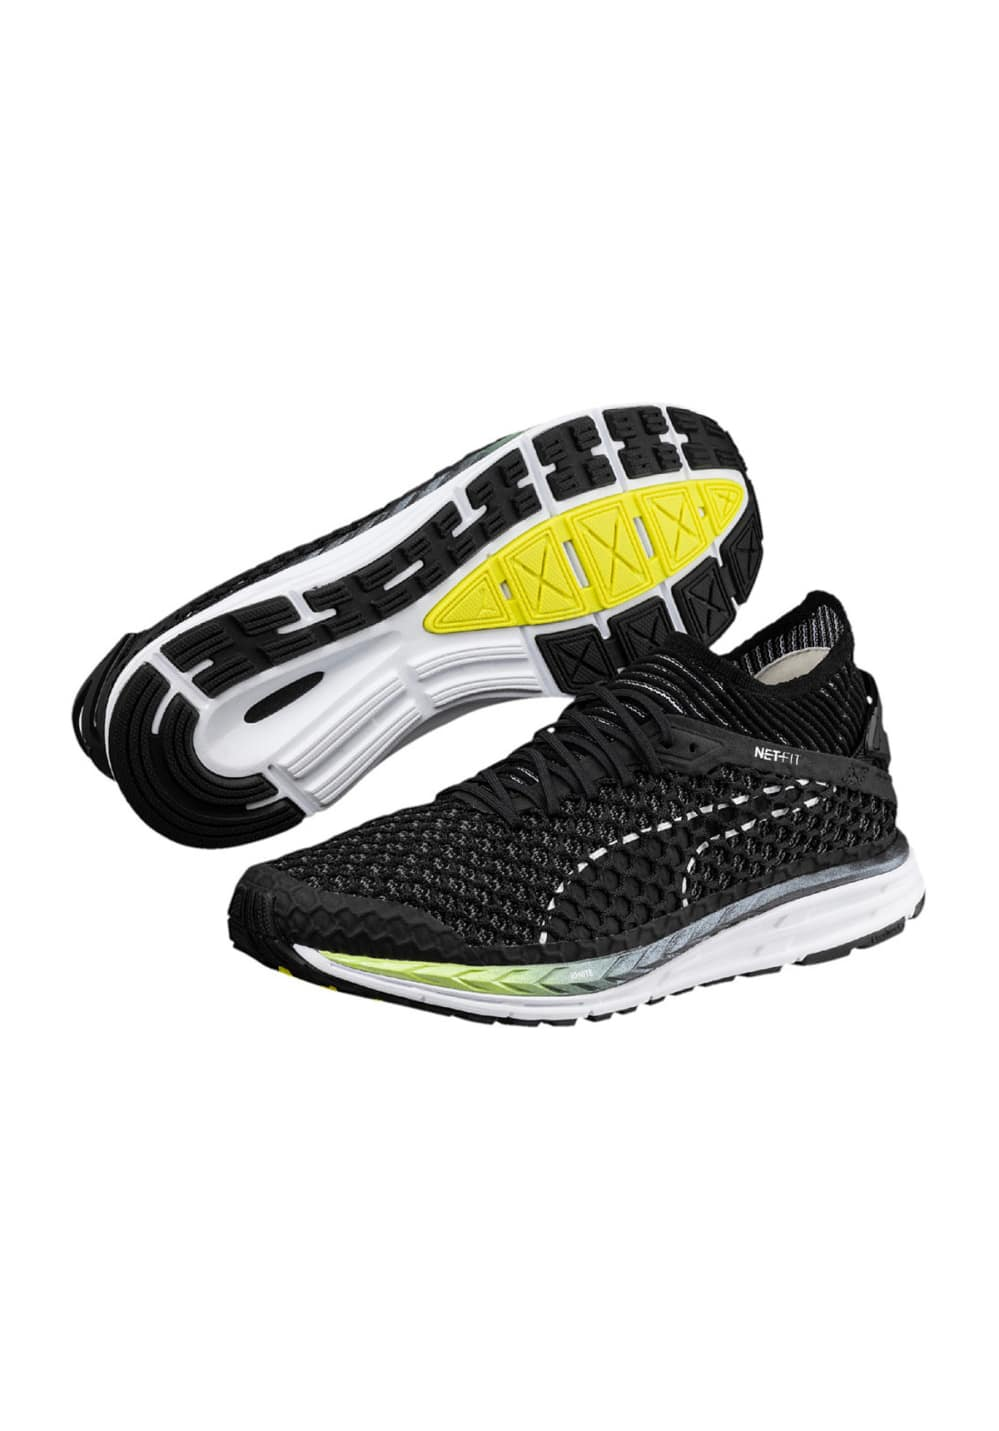 6e24f7c4c71bc Puma Speed IGNITE NETFIT 2 - Running shoes for Men - Black